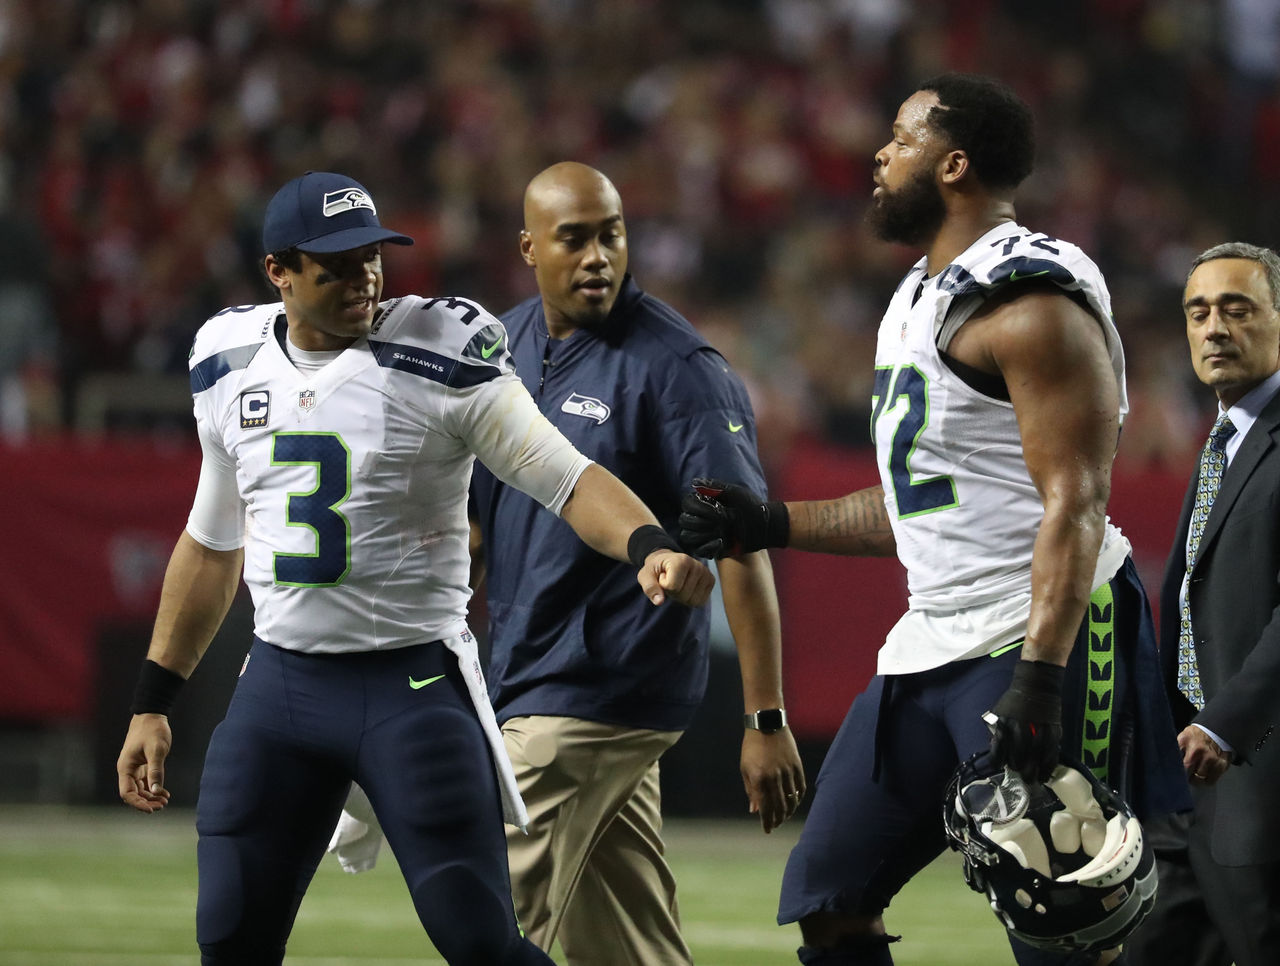 Cropped 2017 01 14t233512z 577740285 nocid rtrmadp 3 nfl nfc divisional seattle seahawks at atlanta falcons